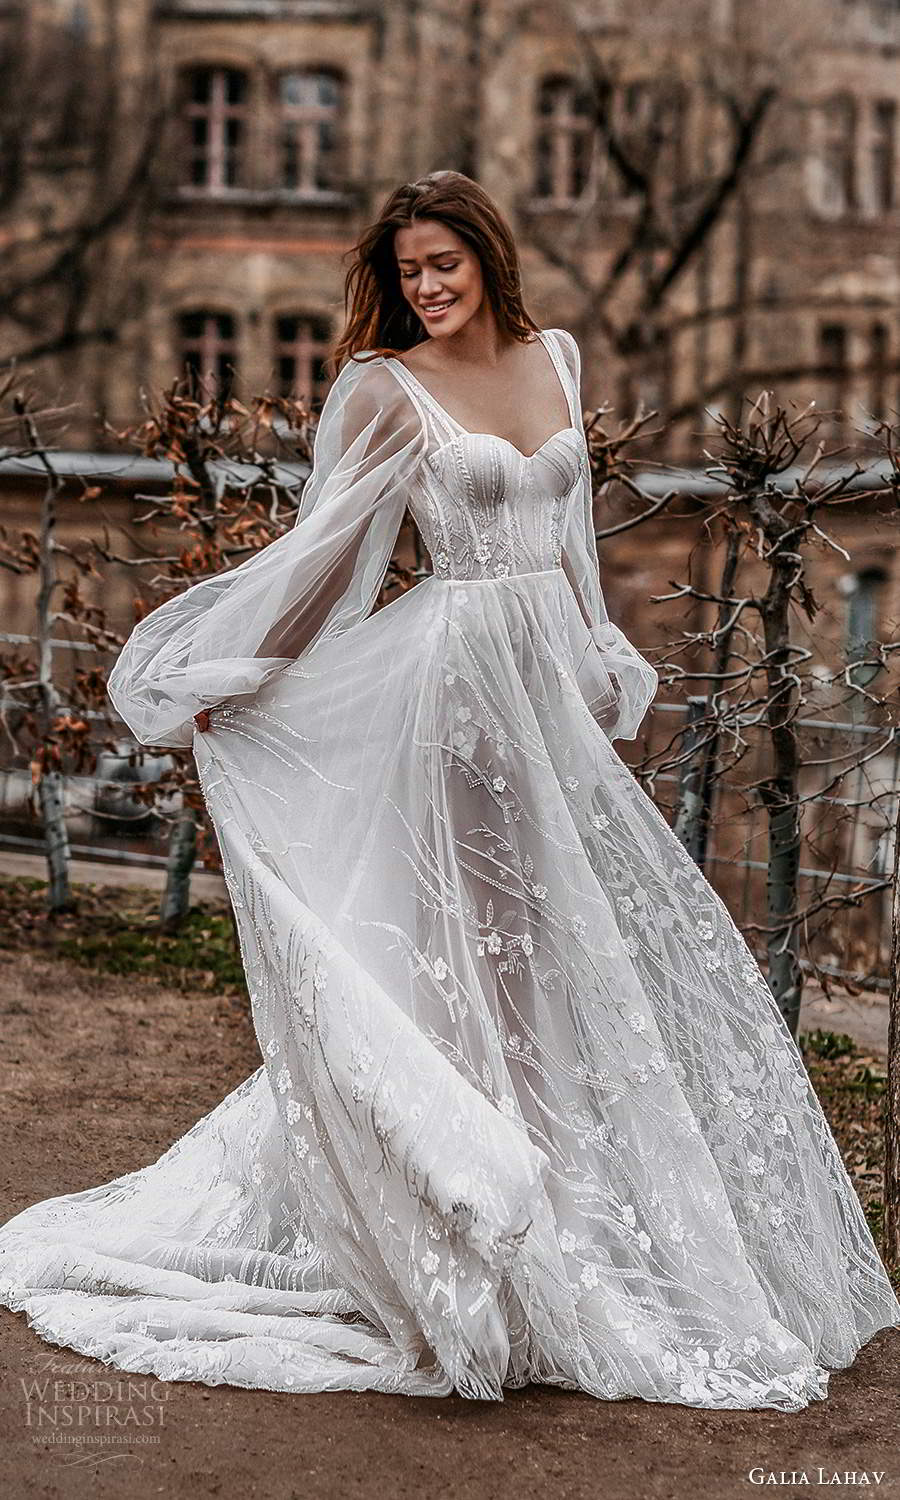 galia lahav spring 2022 gala bridal sheer bishop long sleeve sweetheart neckline fully embellished romantic a line ball gown wedding dress chapel train (9) sv